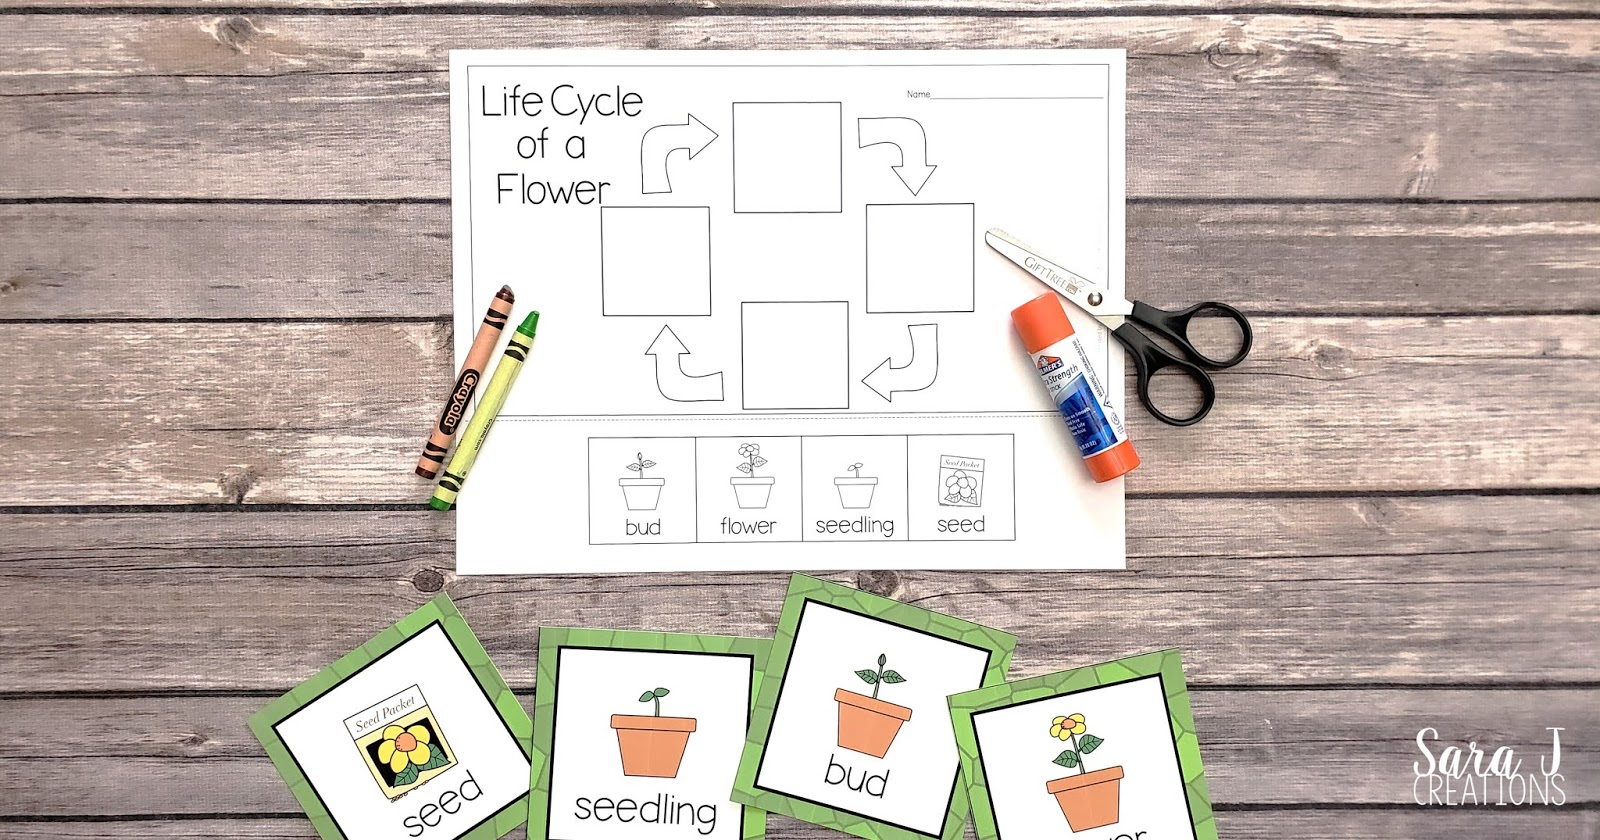 Learn about the life cycle of a flower with these free printables! Practice sequencing the life cycle with these cards and then complete a cut and glue activity.